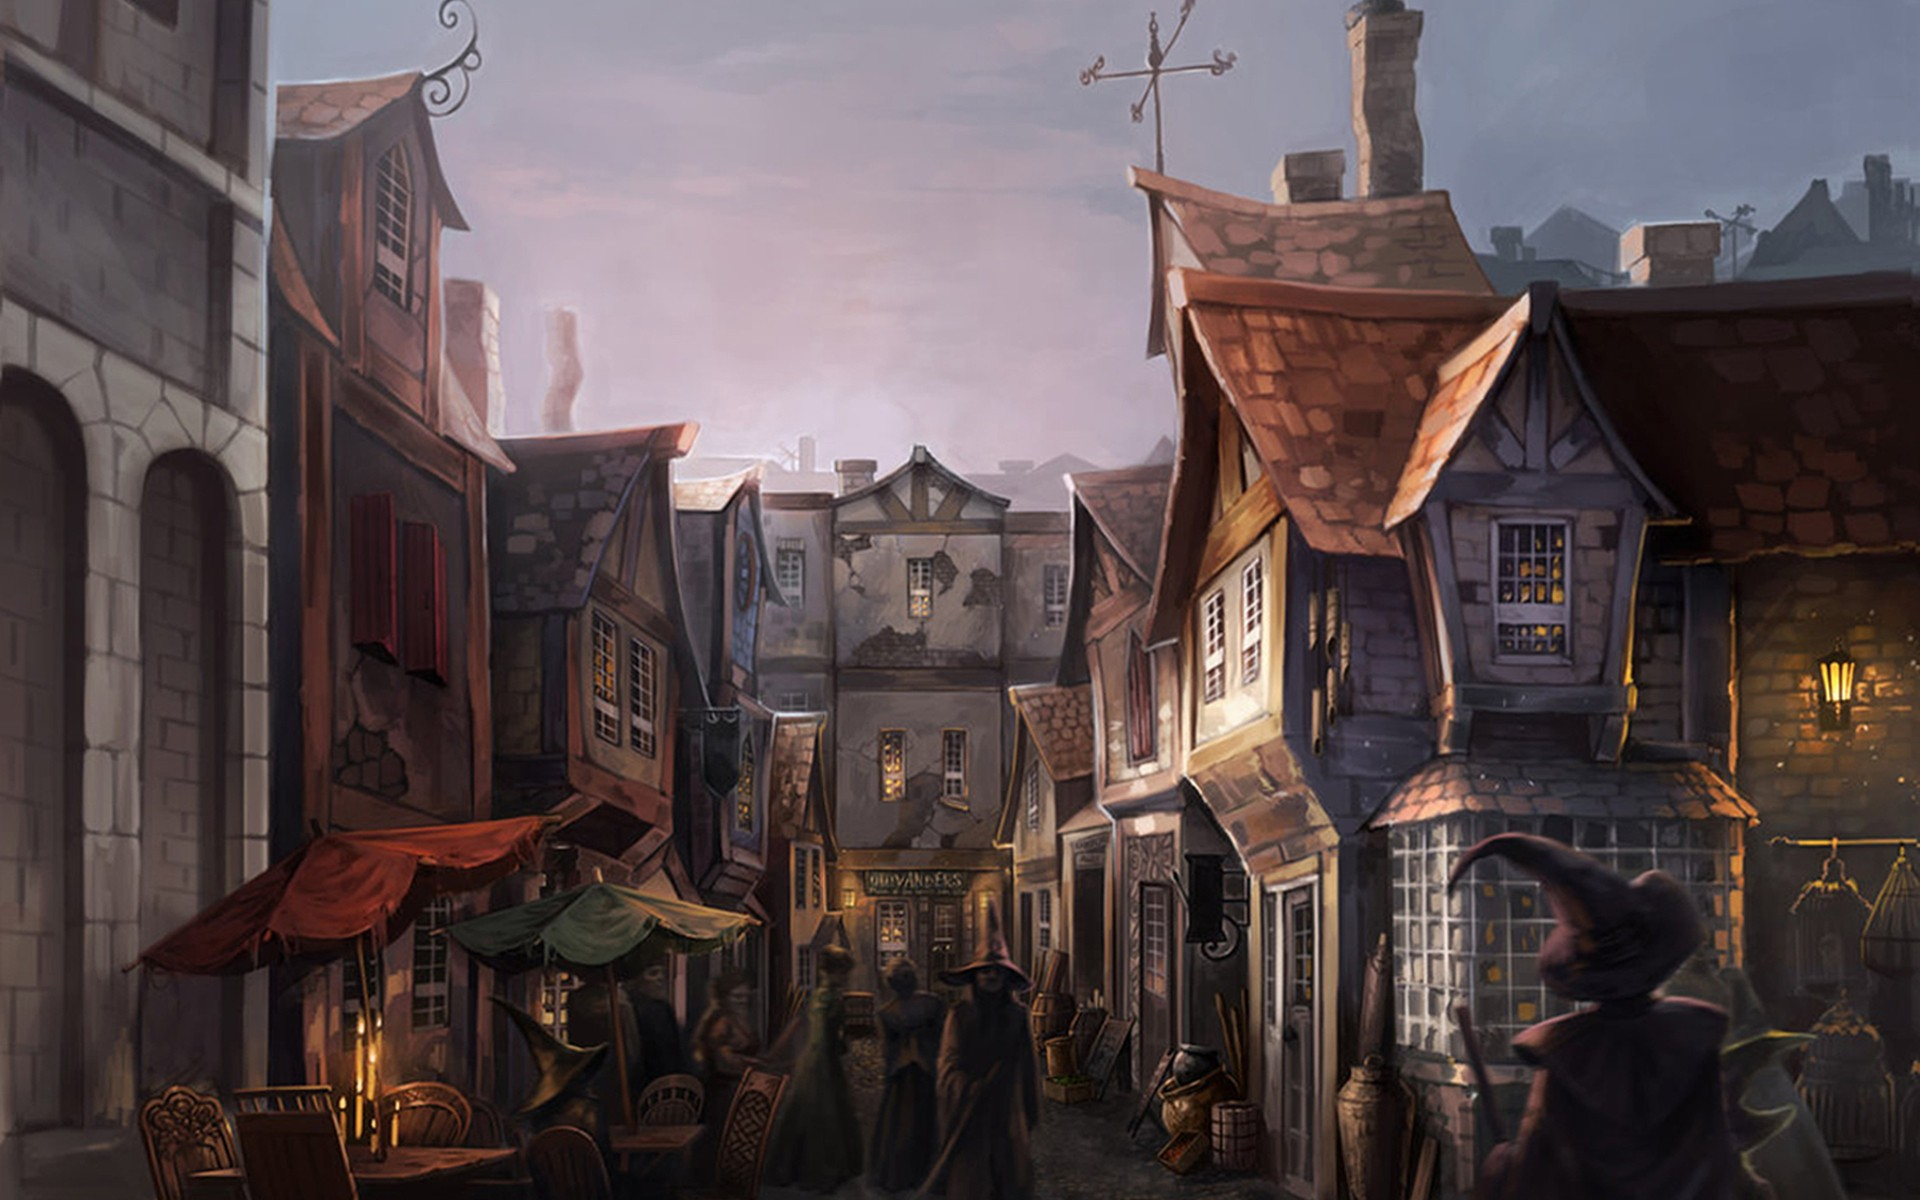 Market-harry-potter-fantasy-art-witches-fictional-landscapes-diagon-alley-4-Size-Home-Decoration-Canvas-Poster.jpg